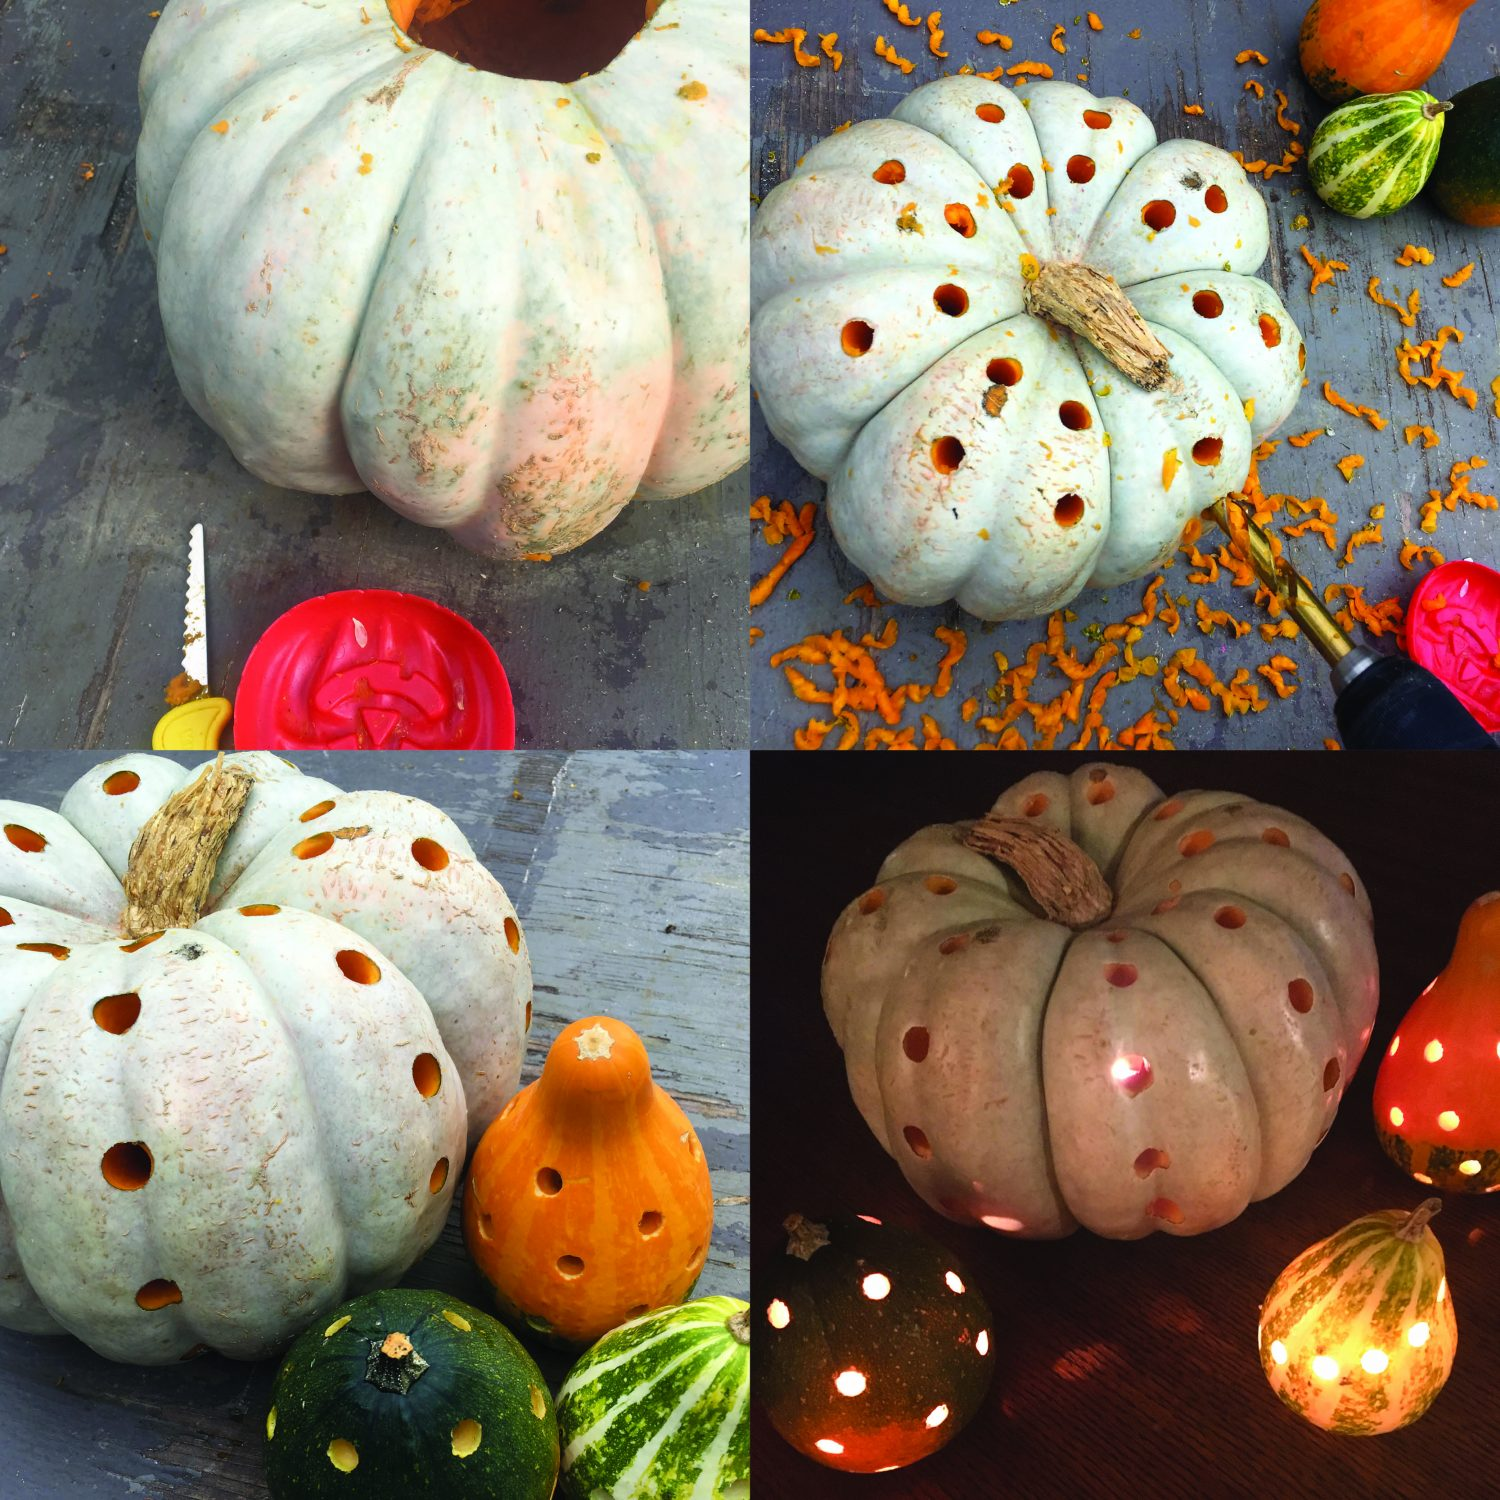 carve specialty pumpkins and gourds pumpkins halloween decorate